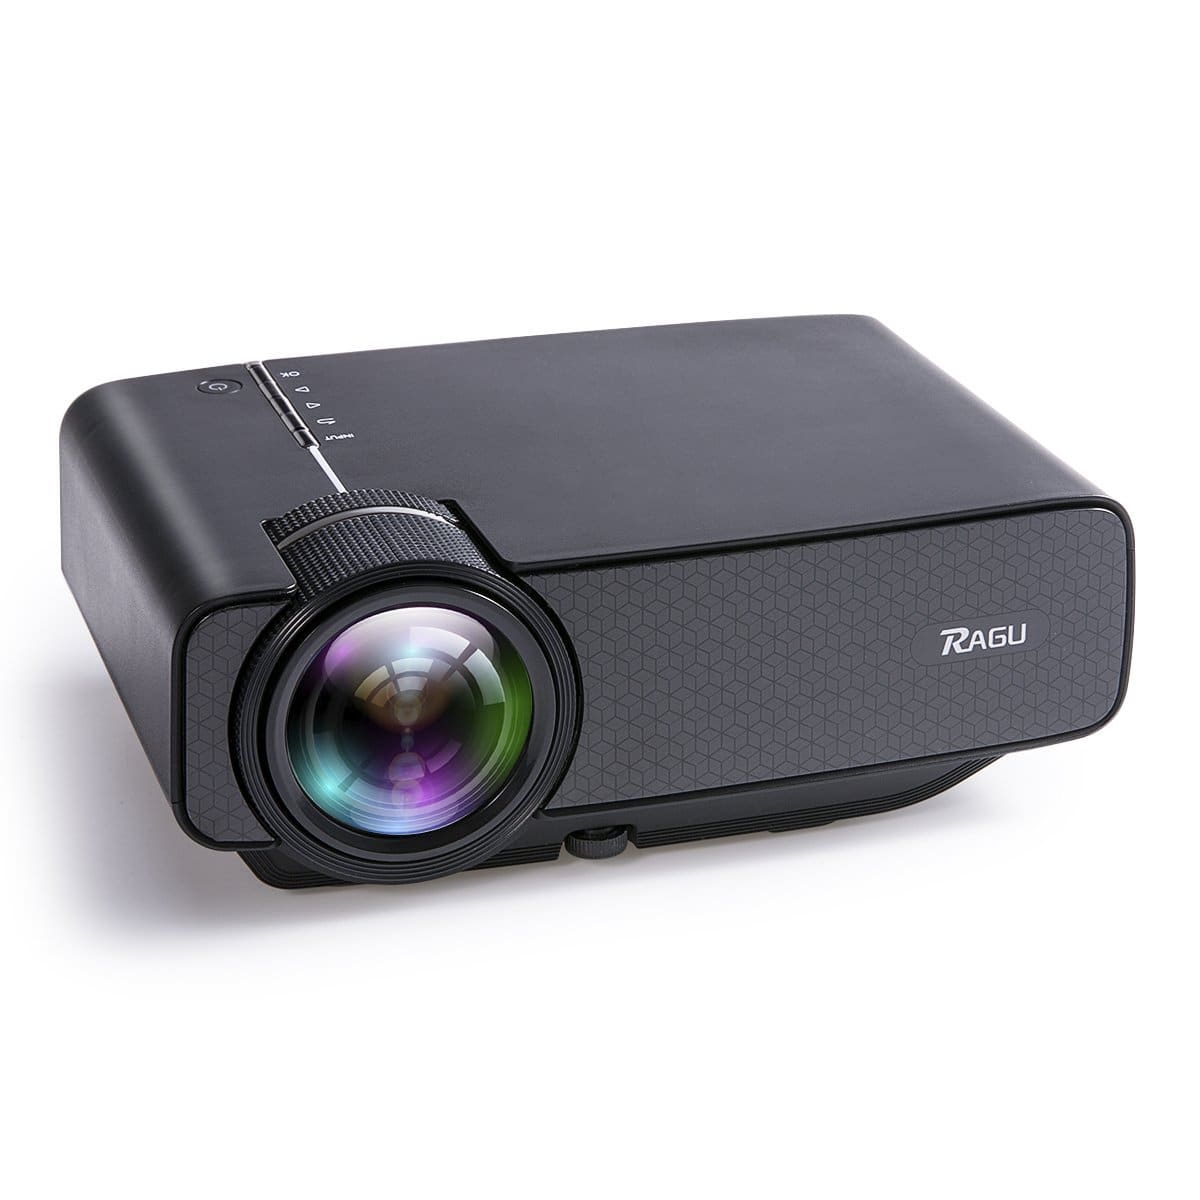 1600 Lumens Mini Portable Projector, Home Entertainment Video Projector Movie Theater LED for $57 @ Amazon